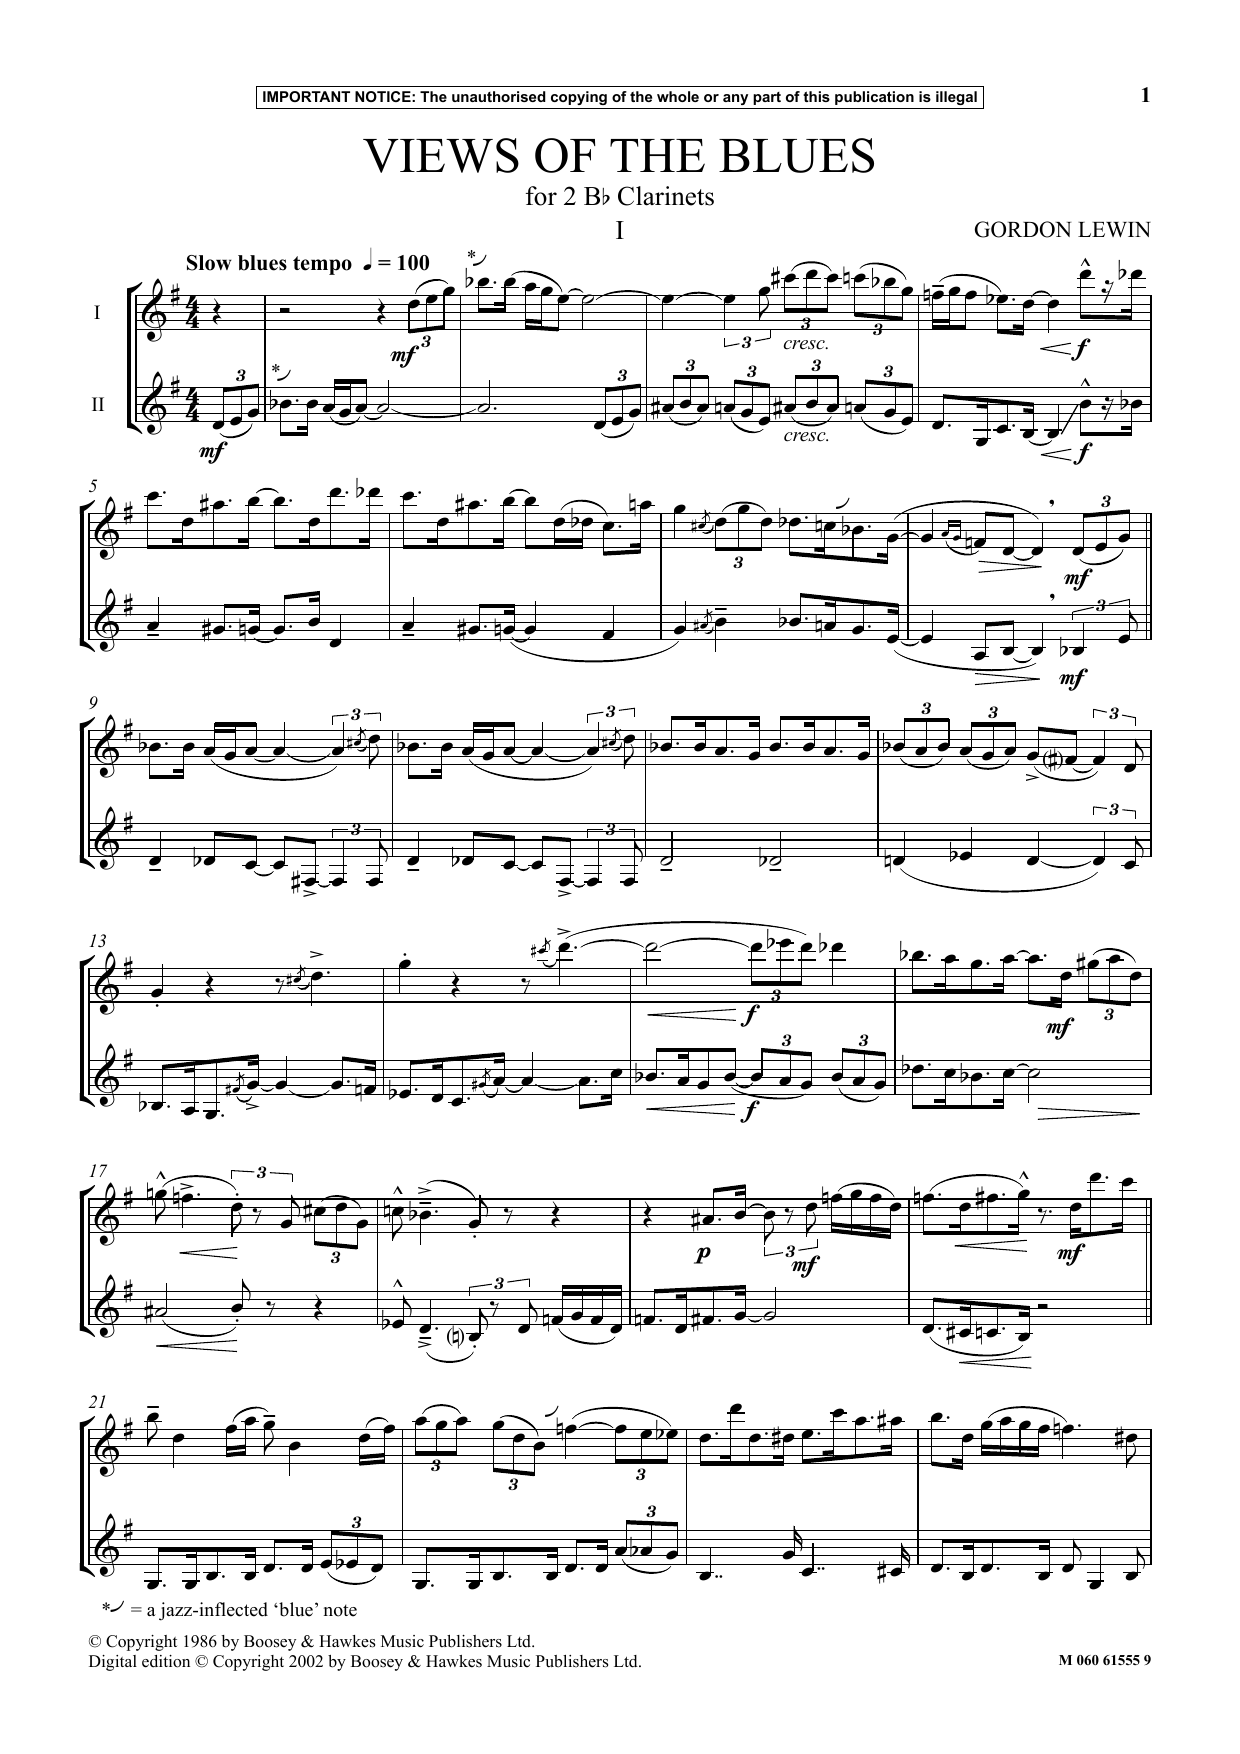 Gordon Lewin Views Of The Blues sheet music notes and chords. Download Printable PDF.